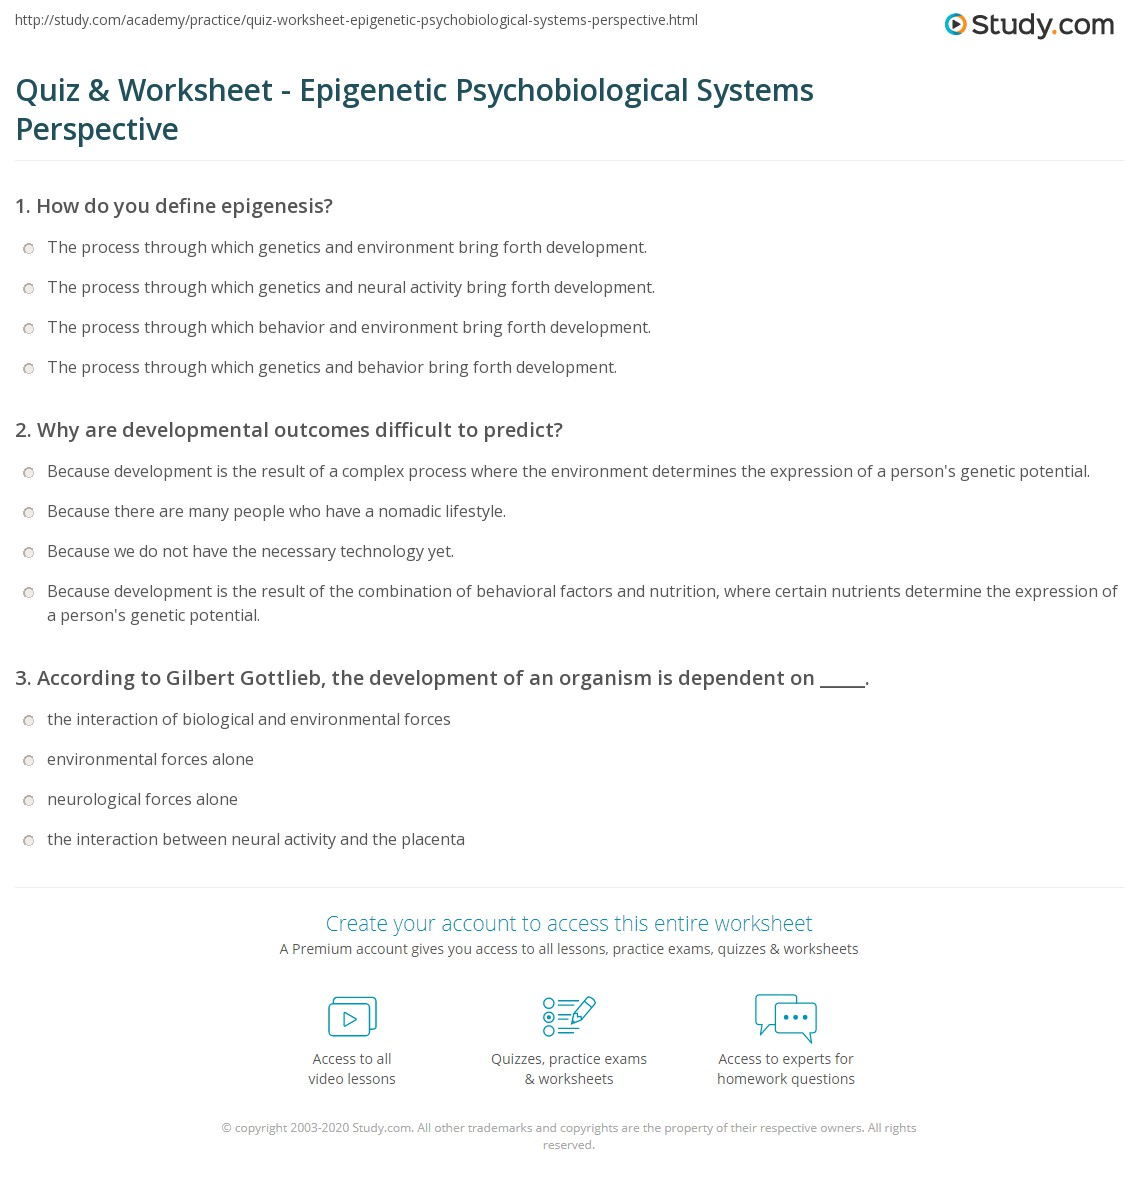 Uncategorized Predicting Outcomes Worksheets quiz worksheet epigenetic psychobiological systems perspective why are developmental outcomes difficult to predict